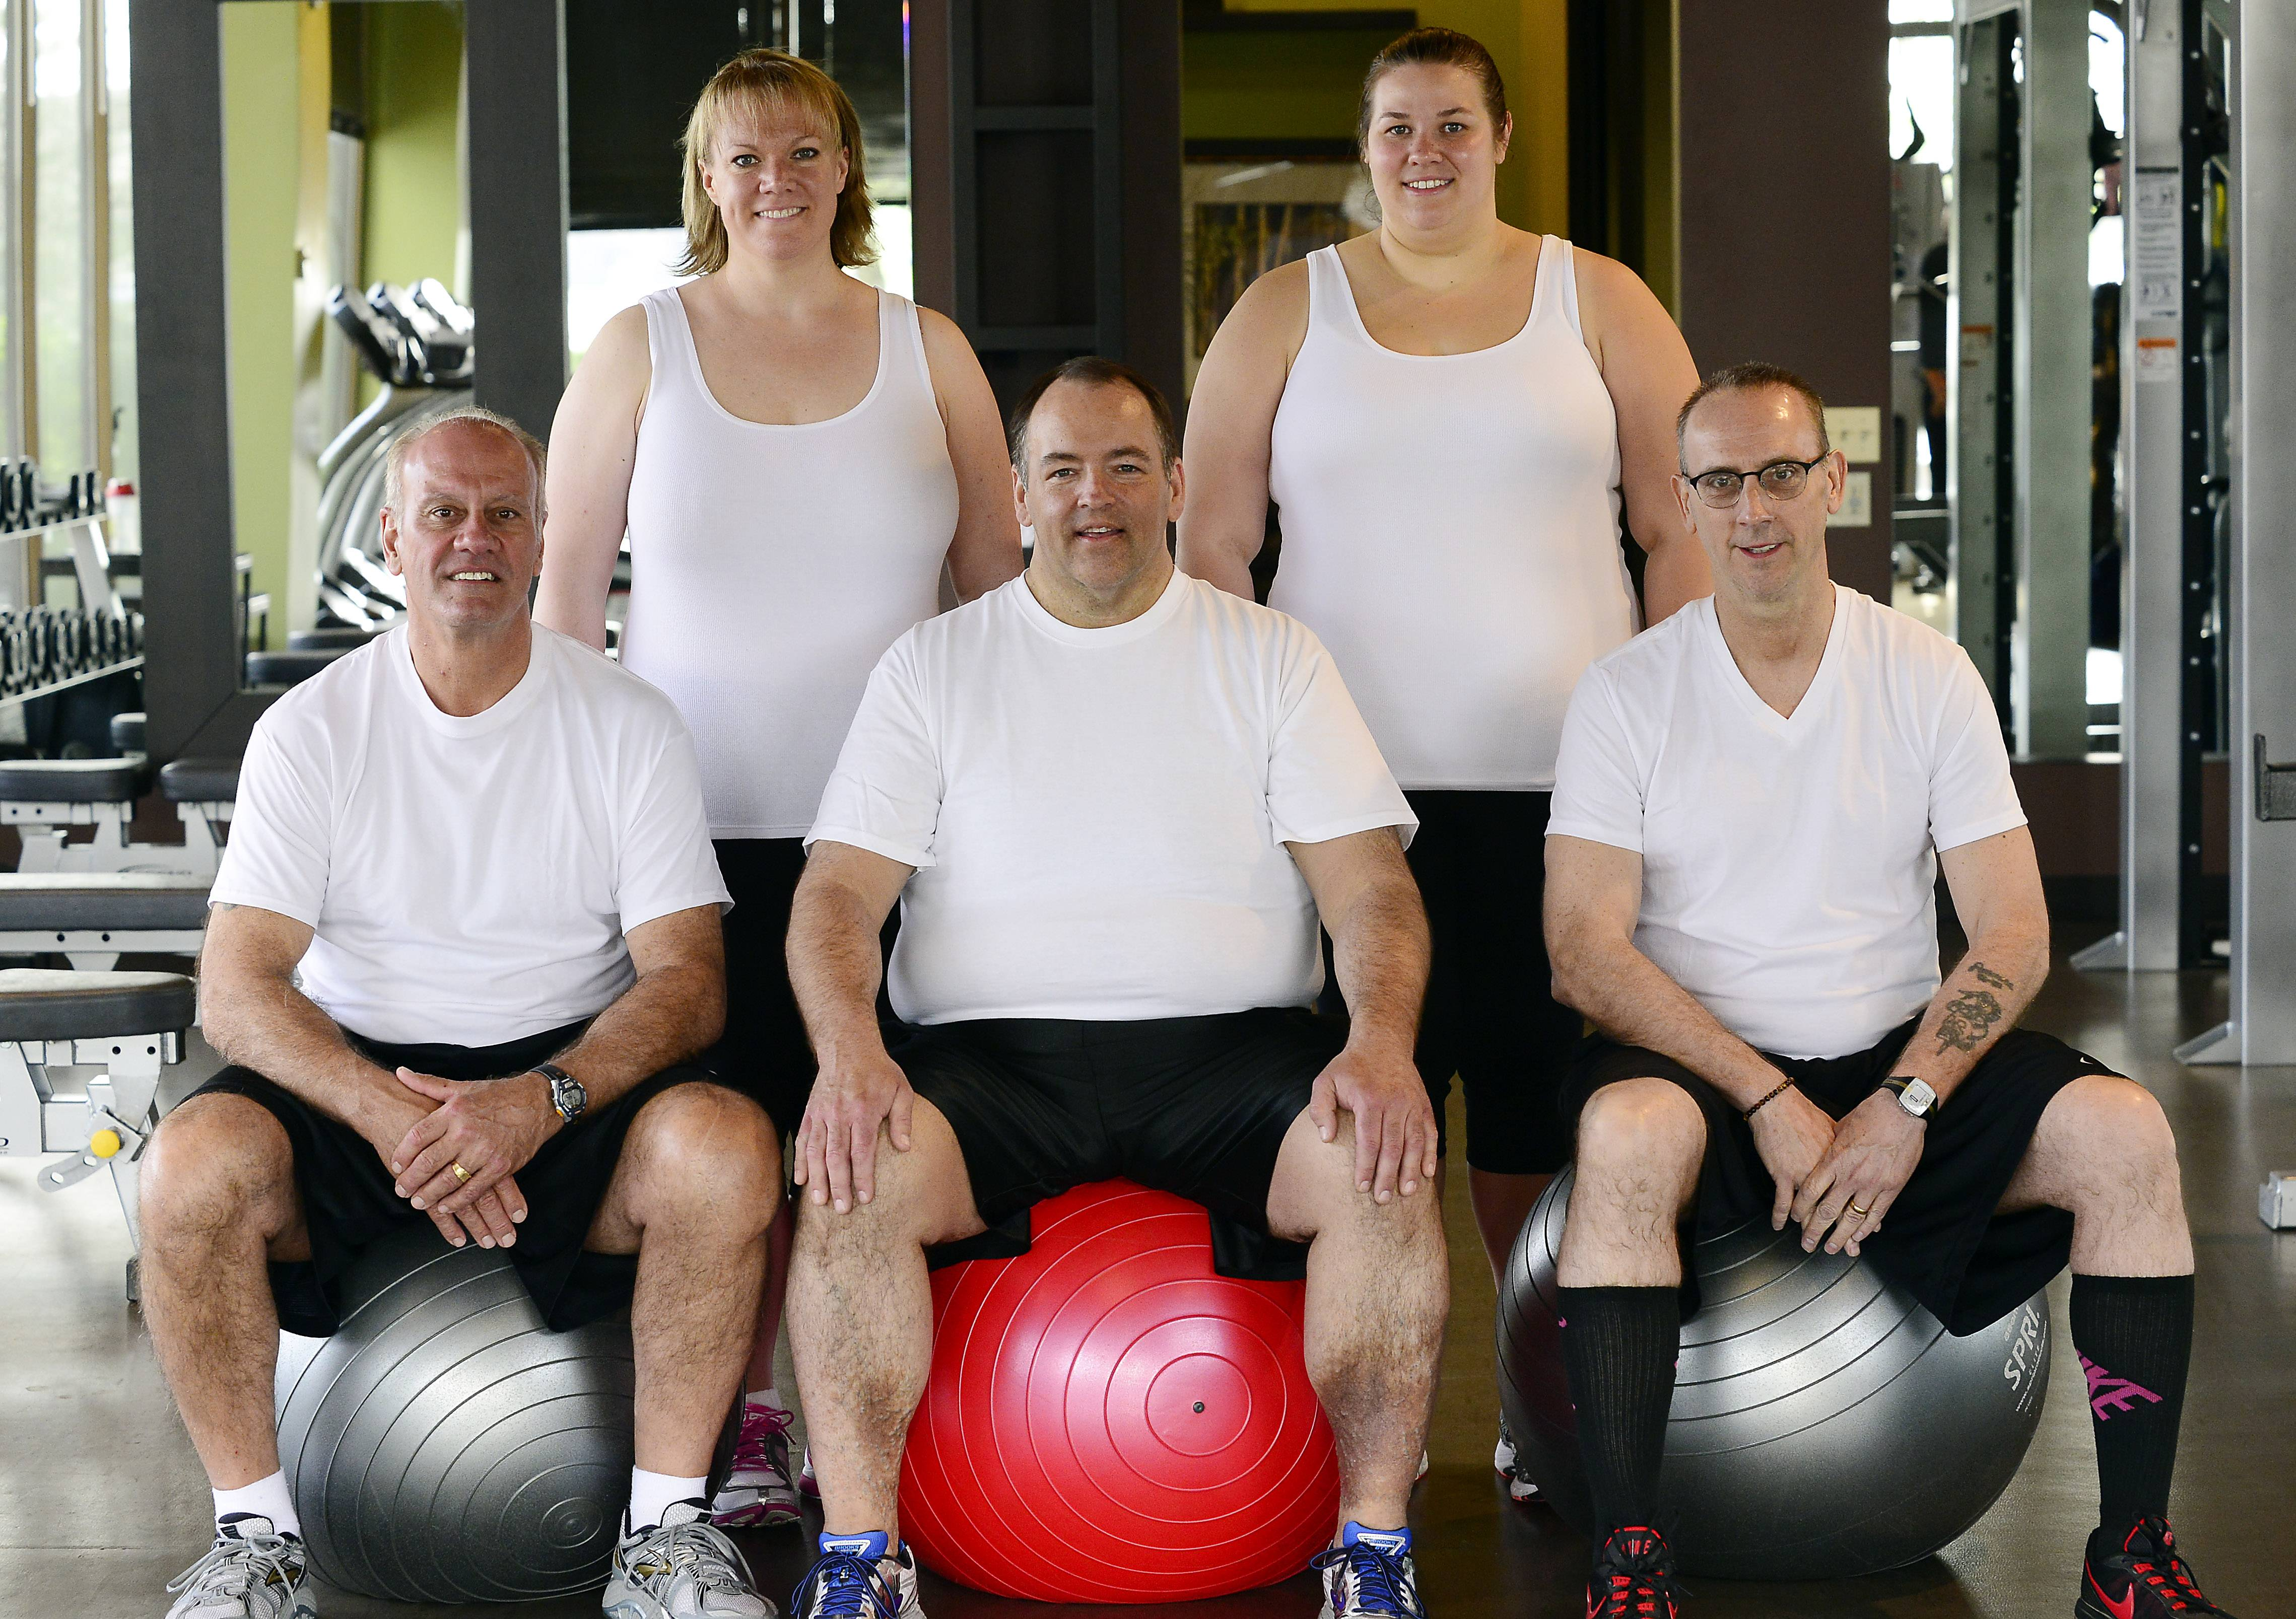 Twelve weeks later and 285 pounds lighter, the 2014 Fittest Losers pose for an updated photo.